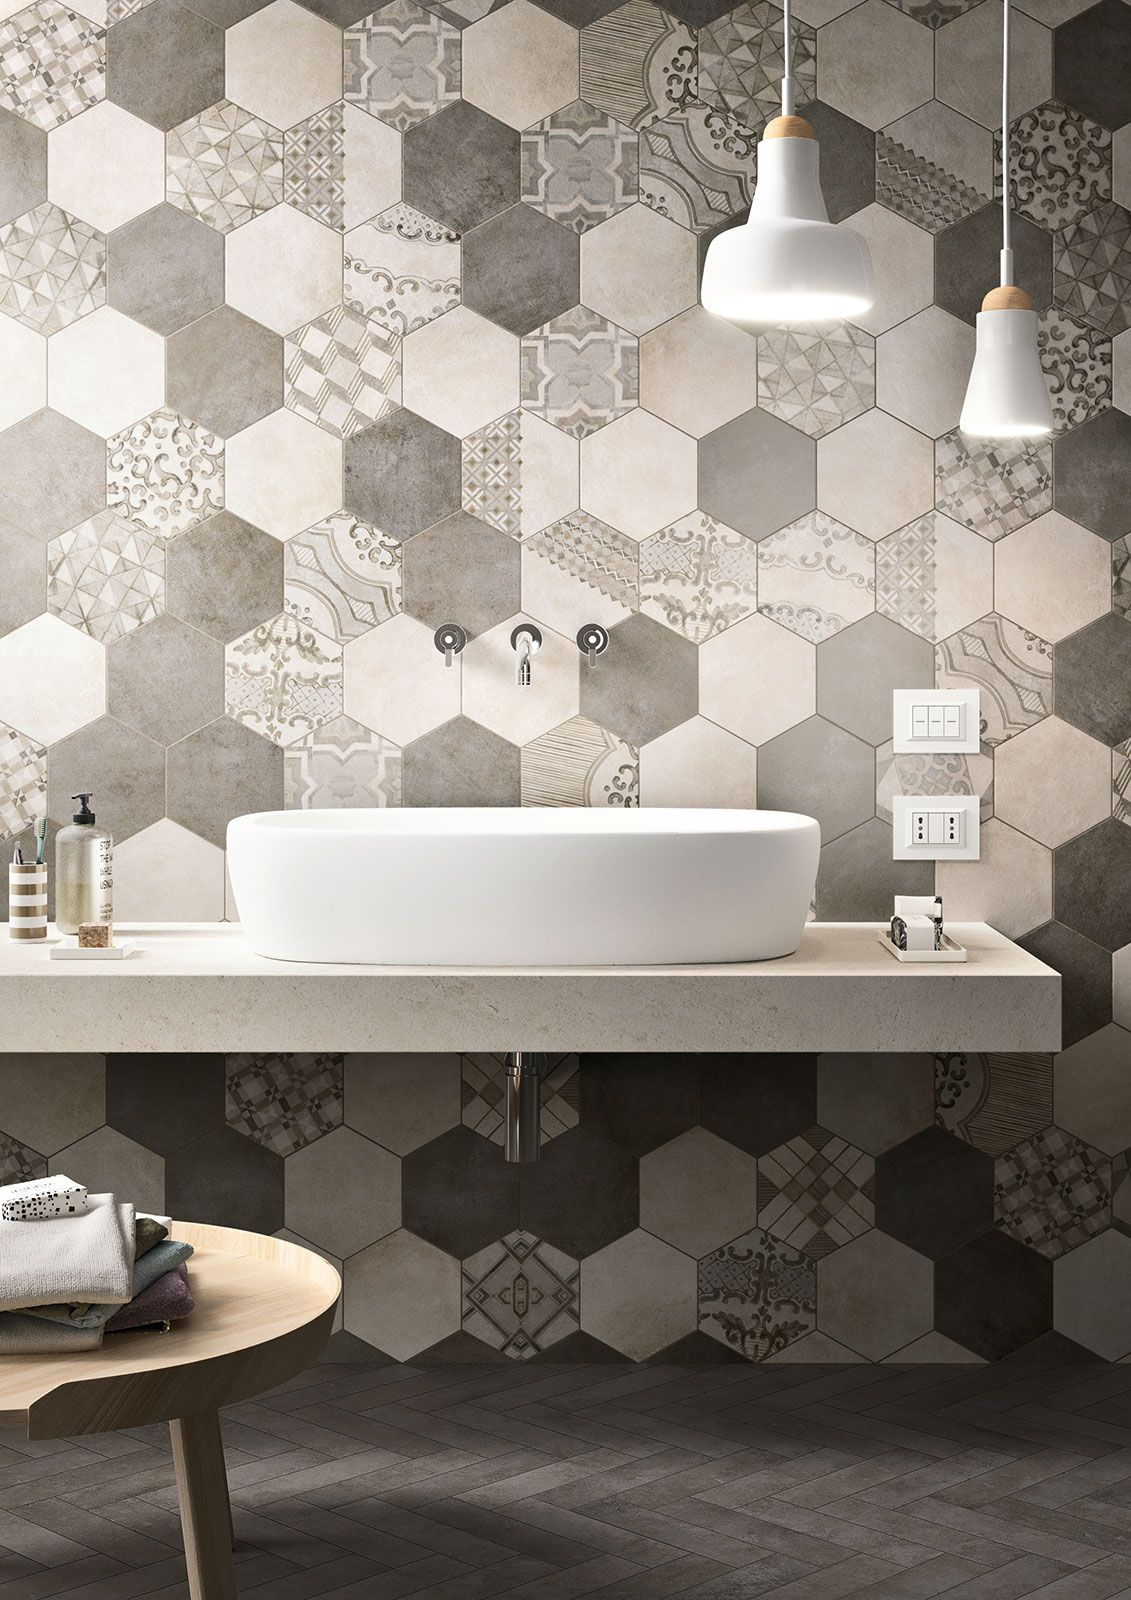 Piastrella Esagonale Nera Honeycomb Obsession Arredo Bagno Bathroom Amazing Bathrooms E